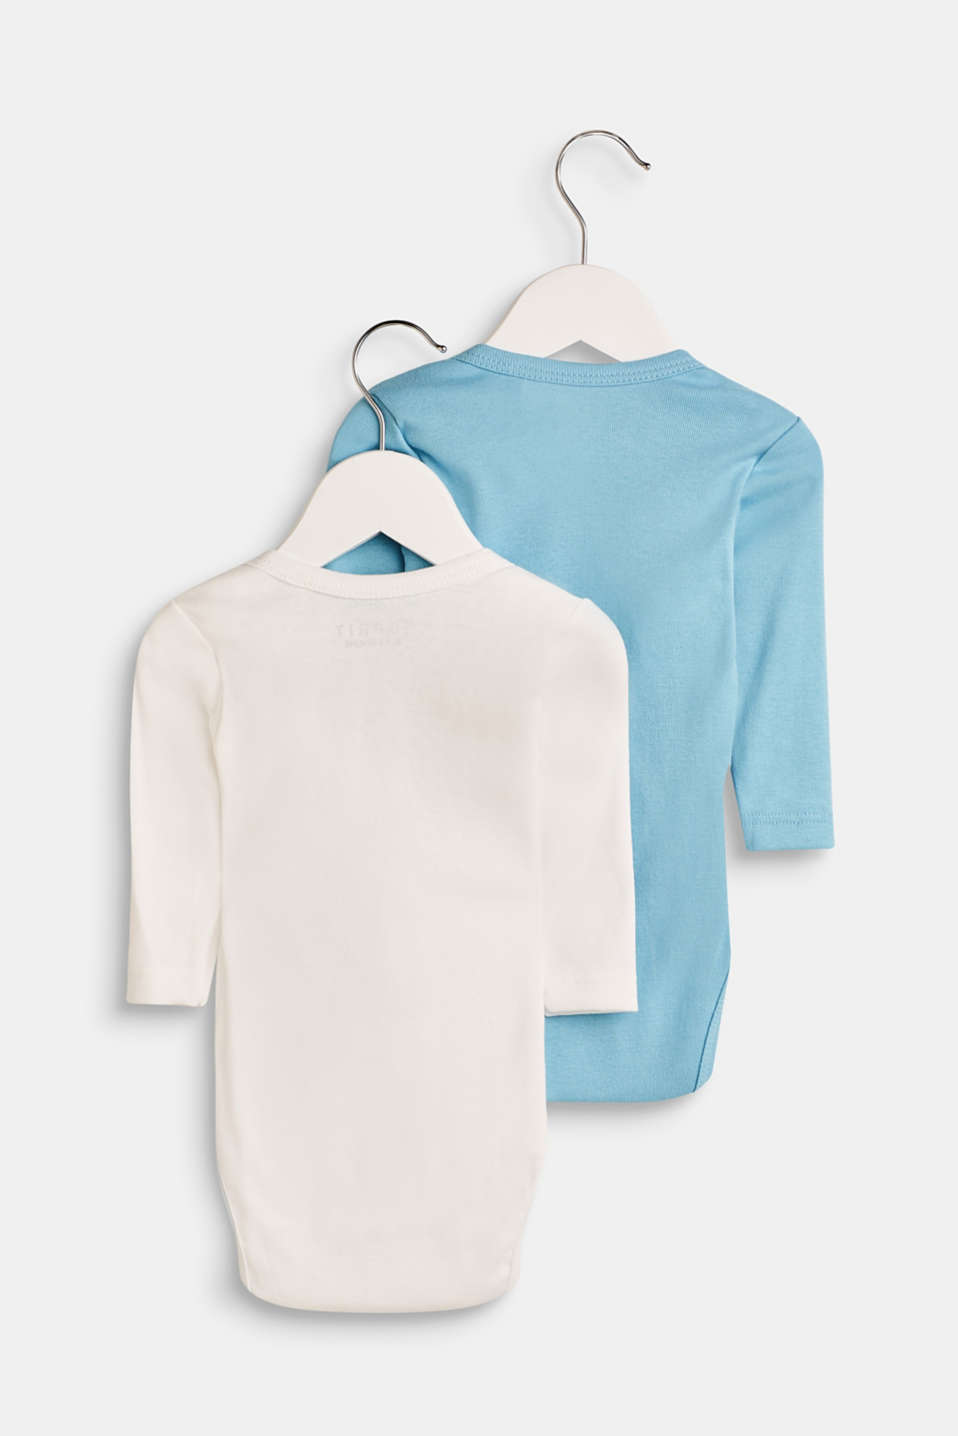 2-pack of bodies with organic cotton